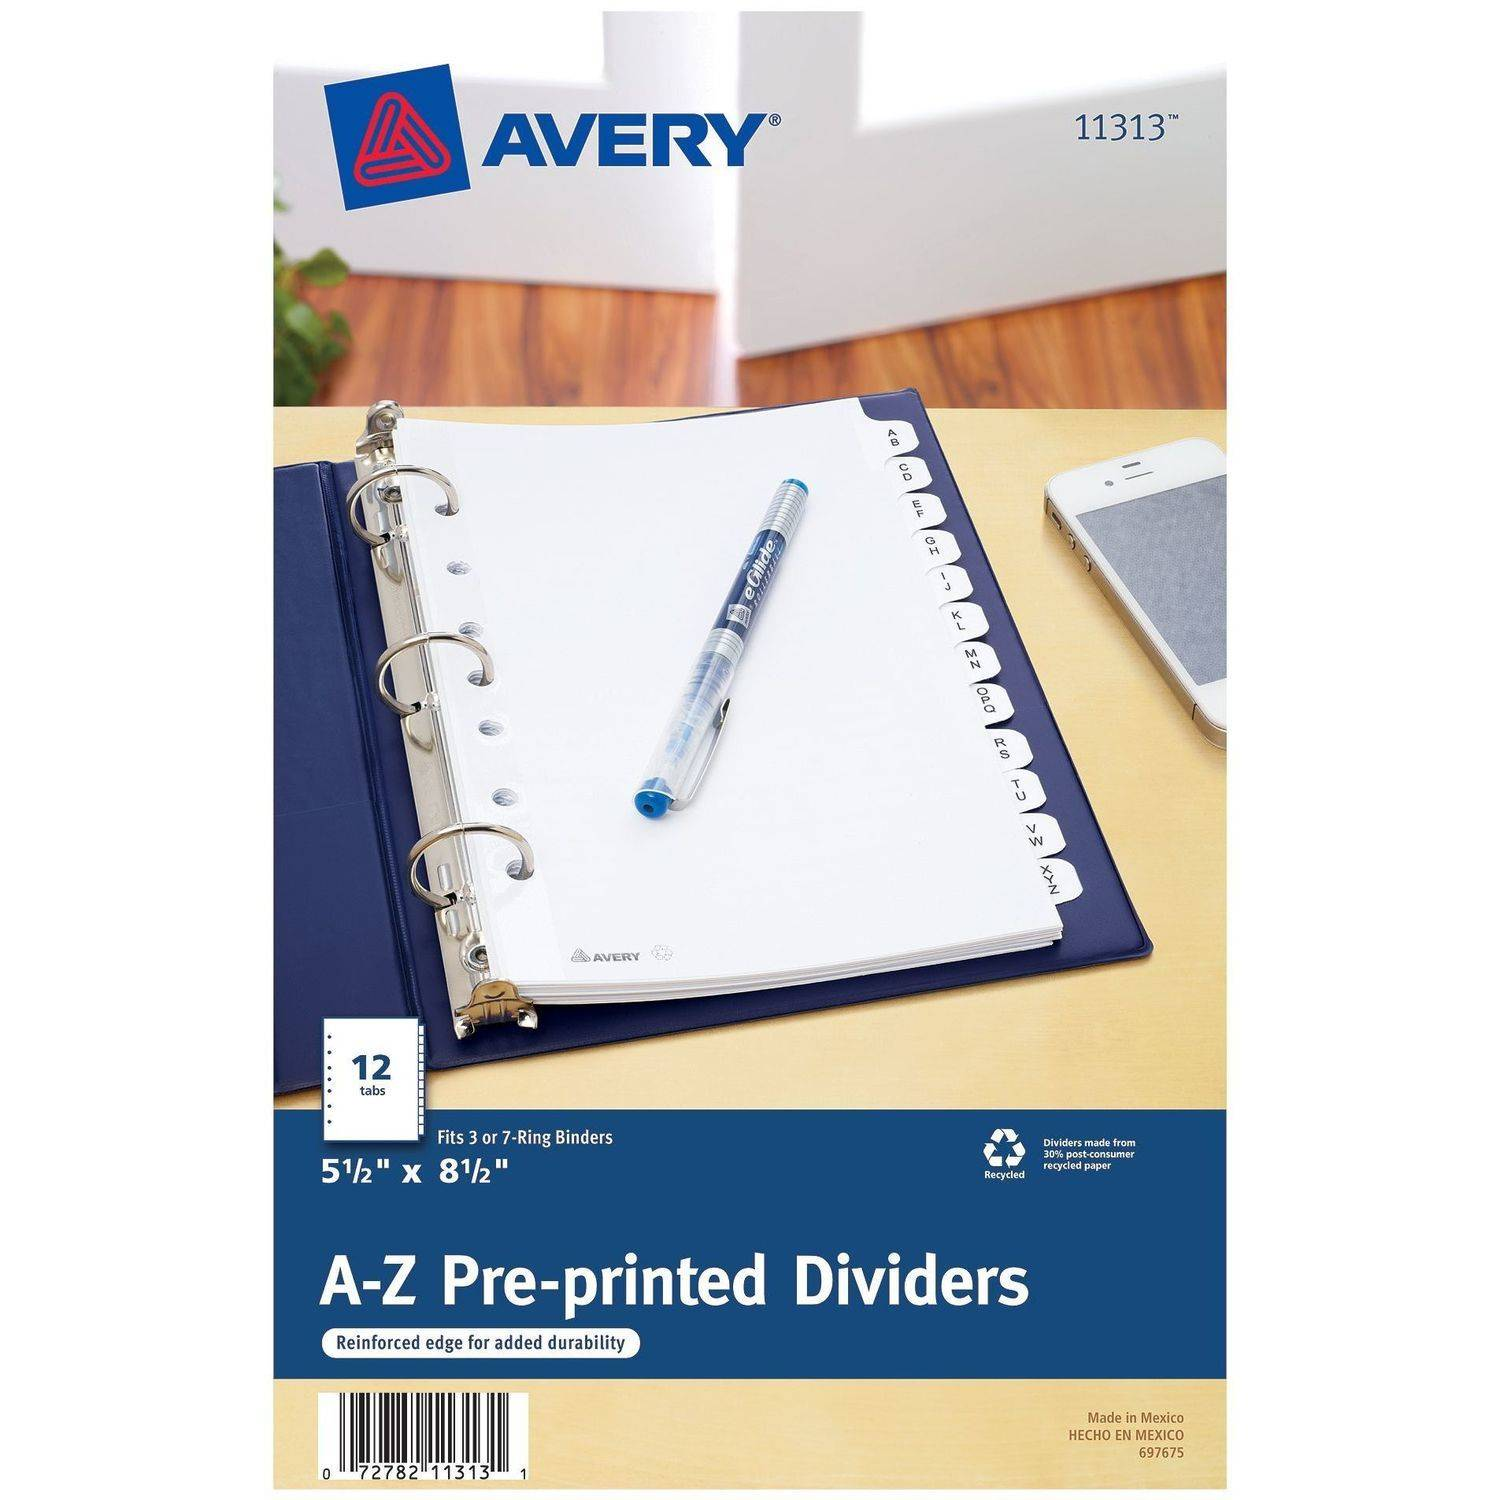 "Avery Mini Pre-printed Dividers with A-Z Tabs 11313, 5-1/2"" x 8-1/2"", 12-Tab Set, White"